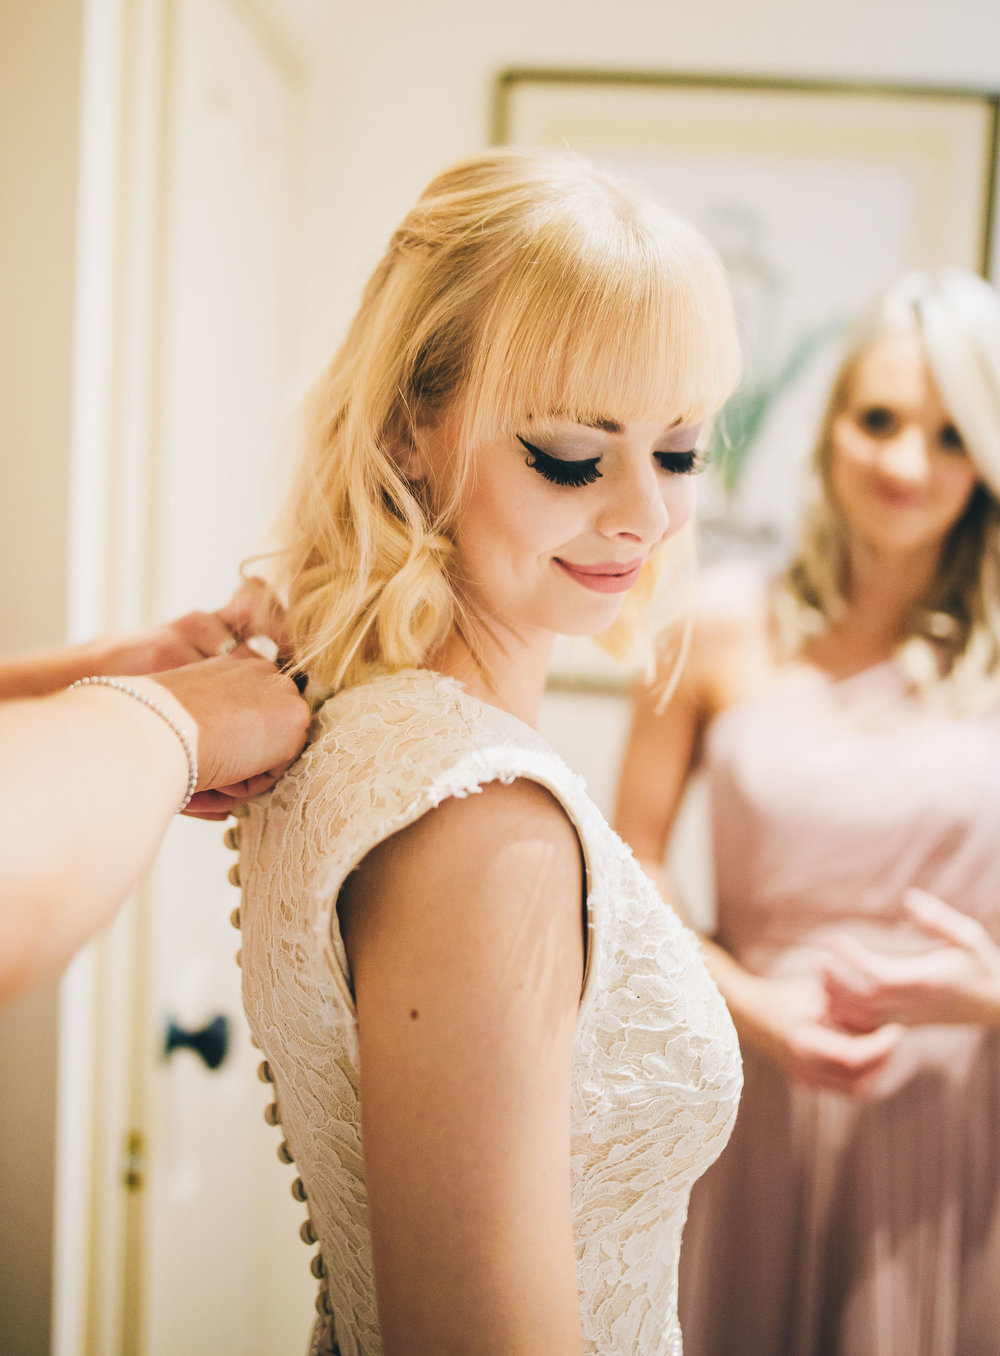 The bride having her dress done up. Documentary styled wedding photographer in Shropshire. Wedding at Combermere Abbey.